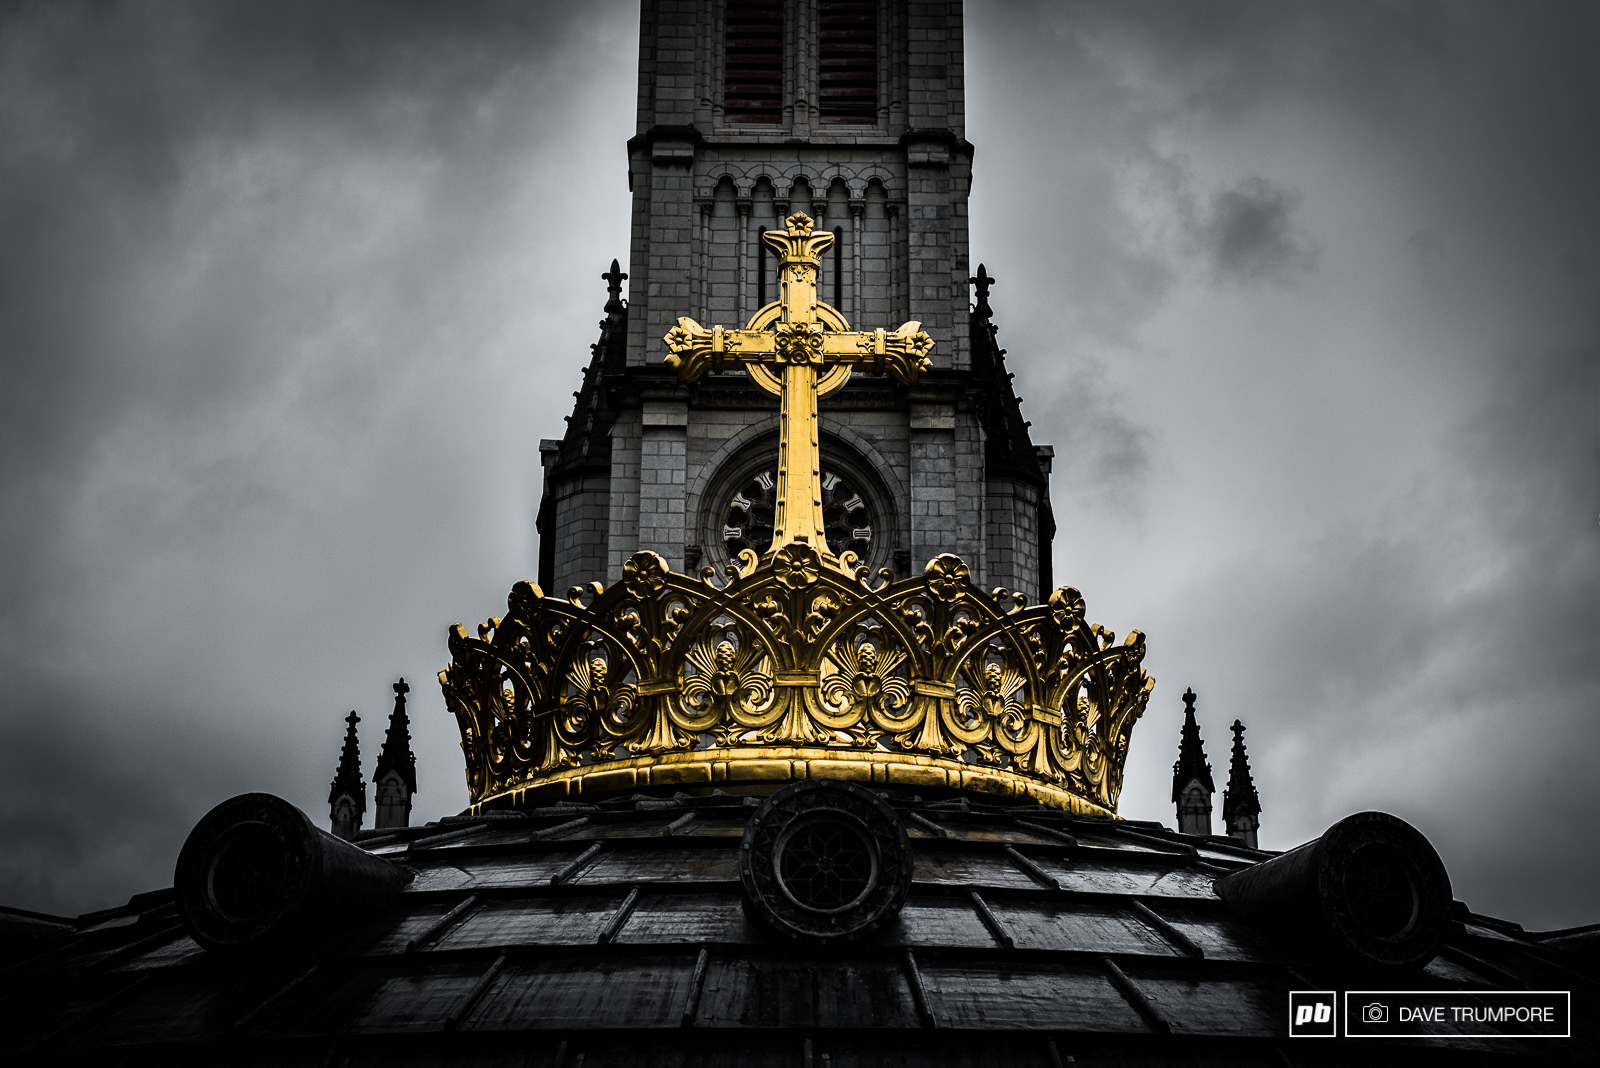 Who will wear the crown and skip town with all the gold in Lourdes this weekend Stay tuned to find out.